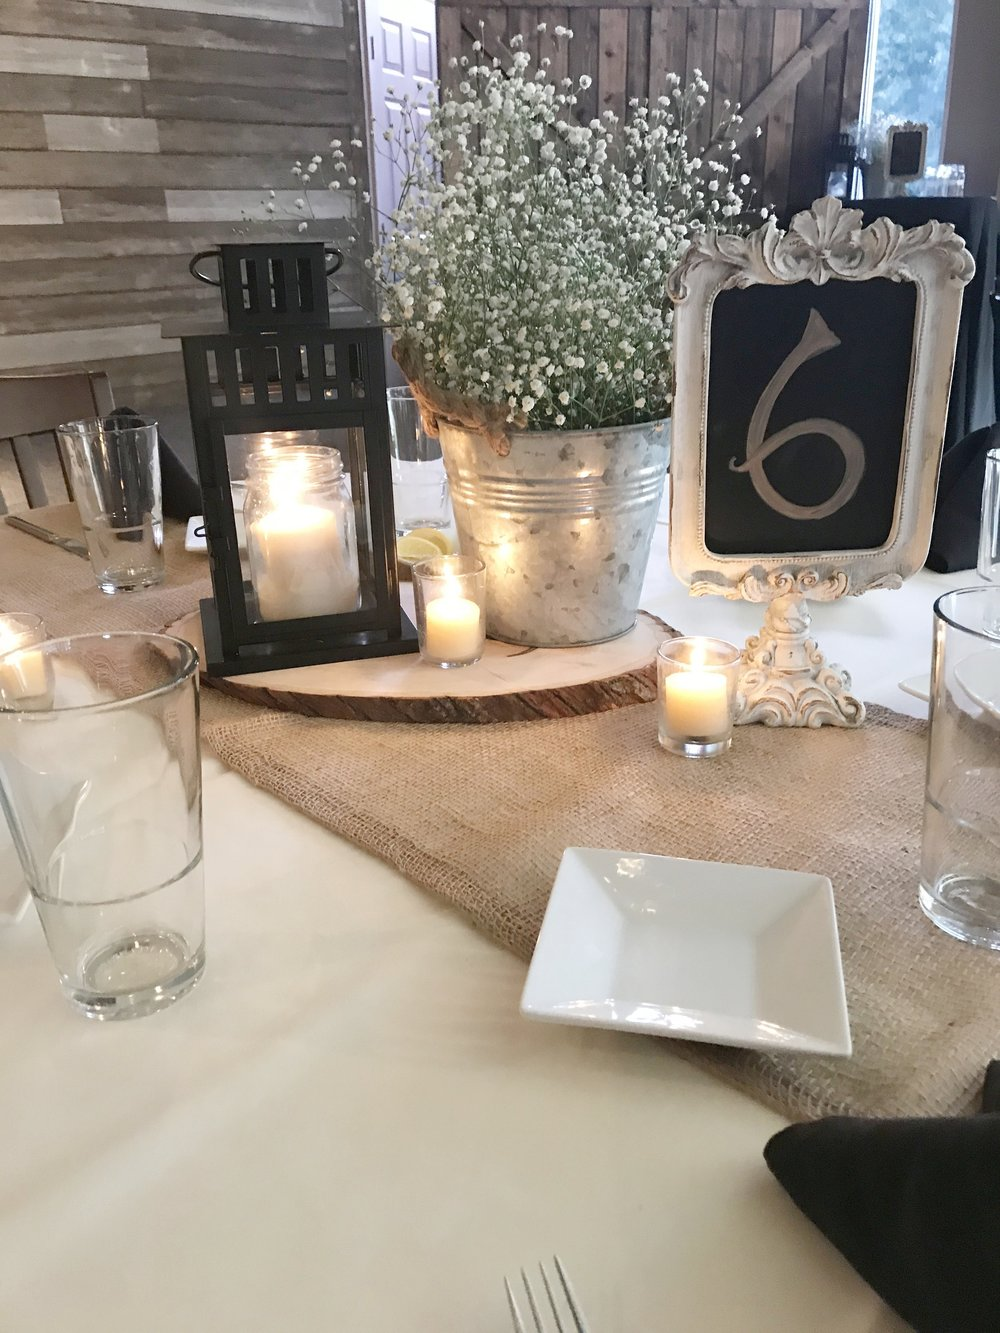 Weddings Getting married?  Plan your wedding events in one of our three private rooms at Houck's. Host your rehearsal dinner, engagement party, or wedding shower in our rustic and convenient location.